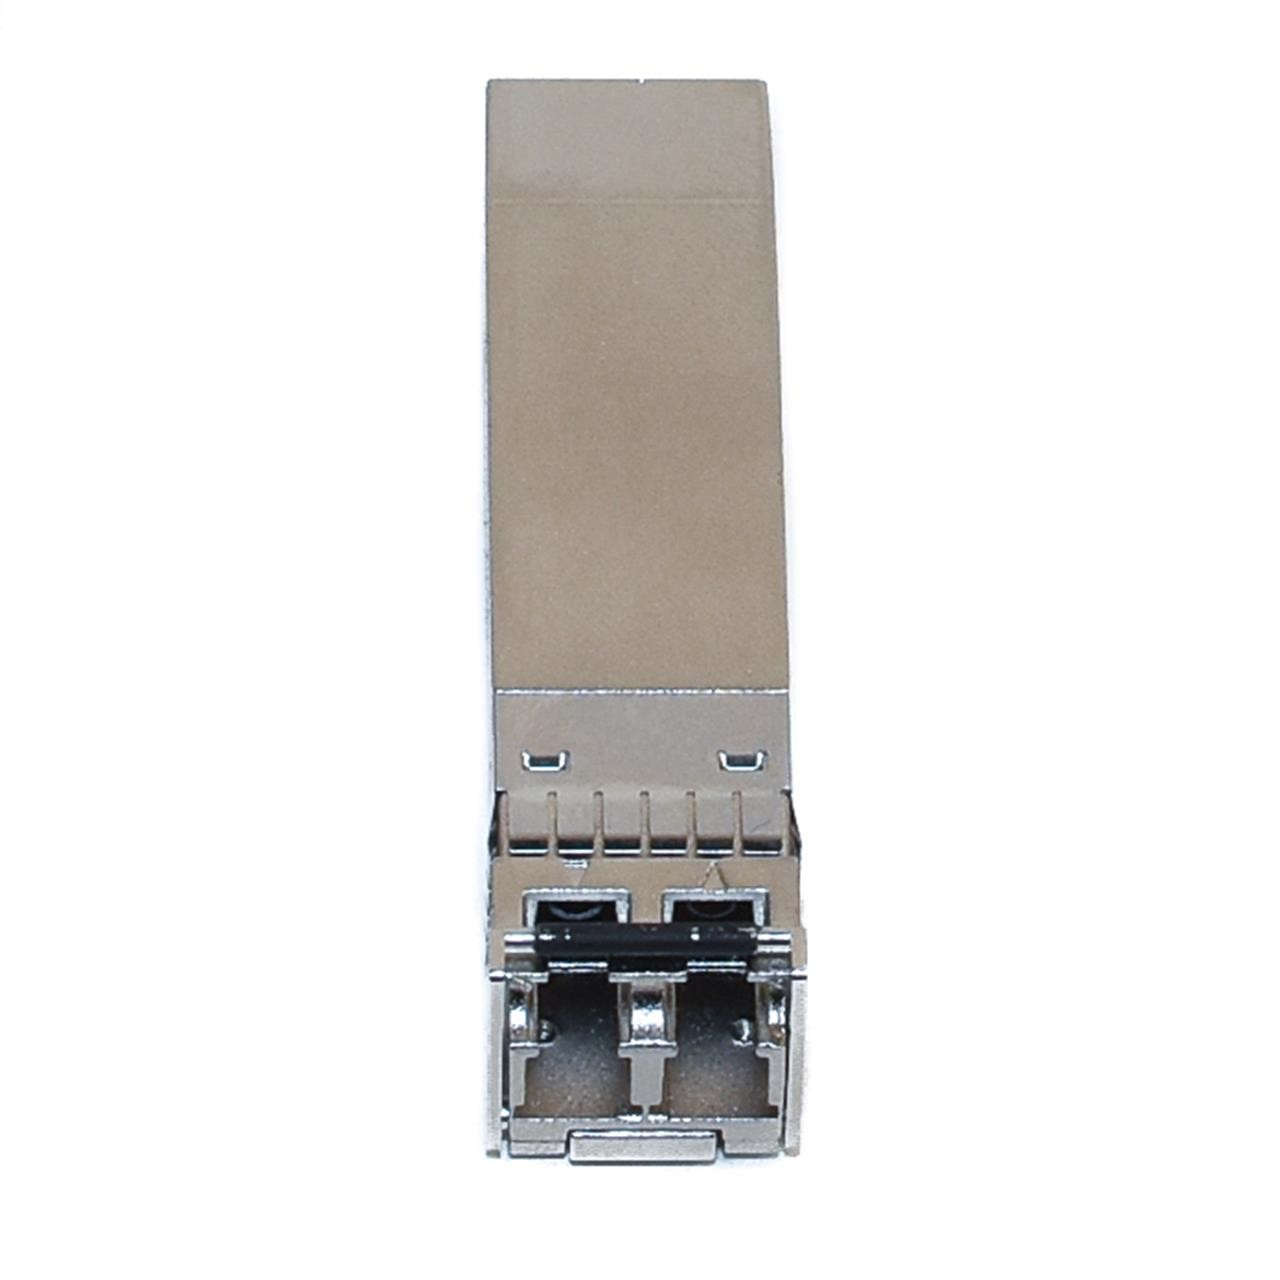 Fiberstore Sfp 10g85 3m Br 10gbe Sr Sw Optic Transceiver Click On Thumbnails To Enlarge